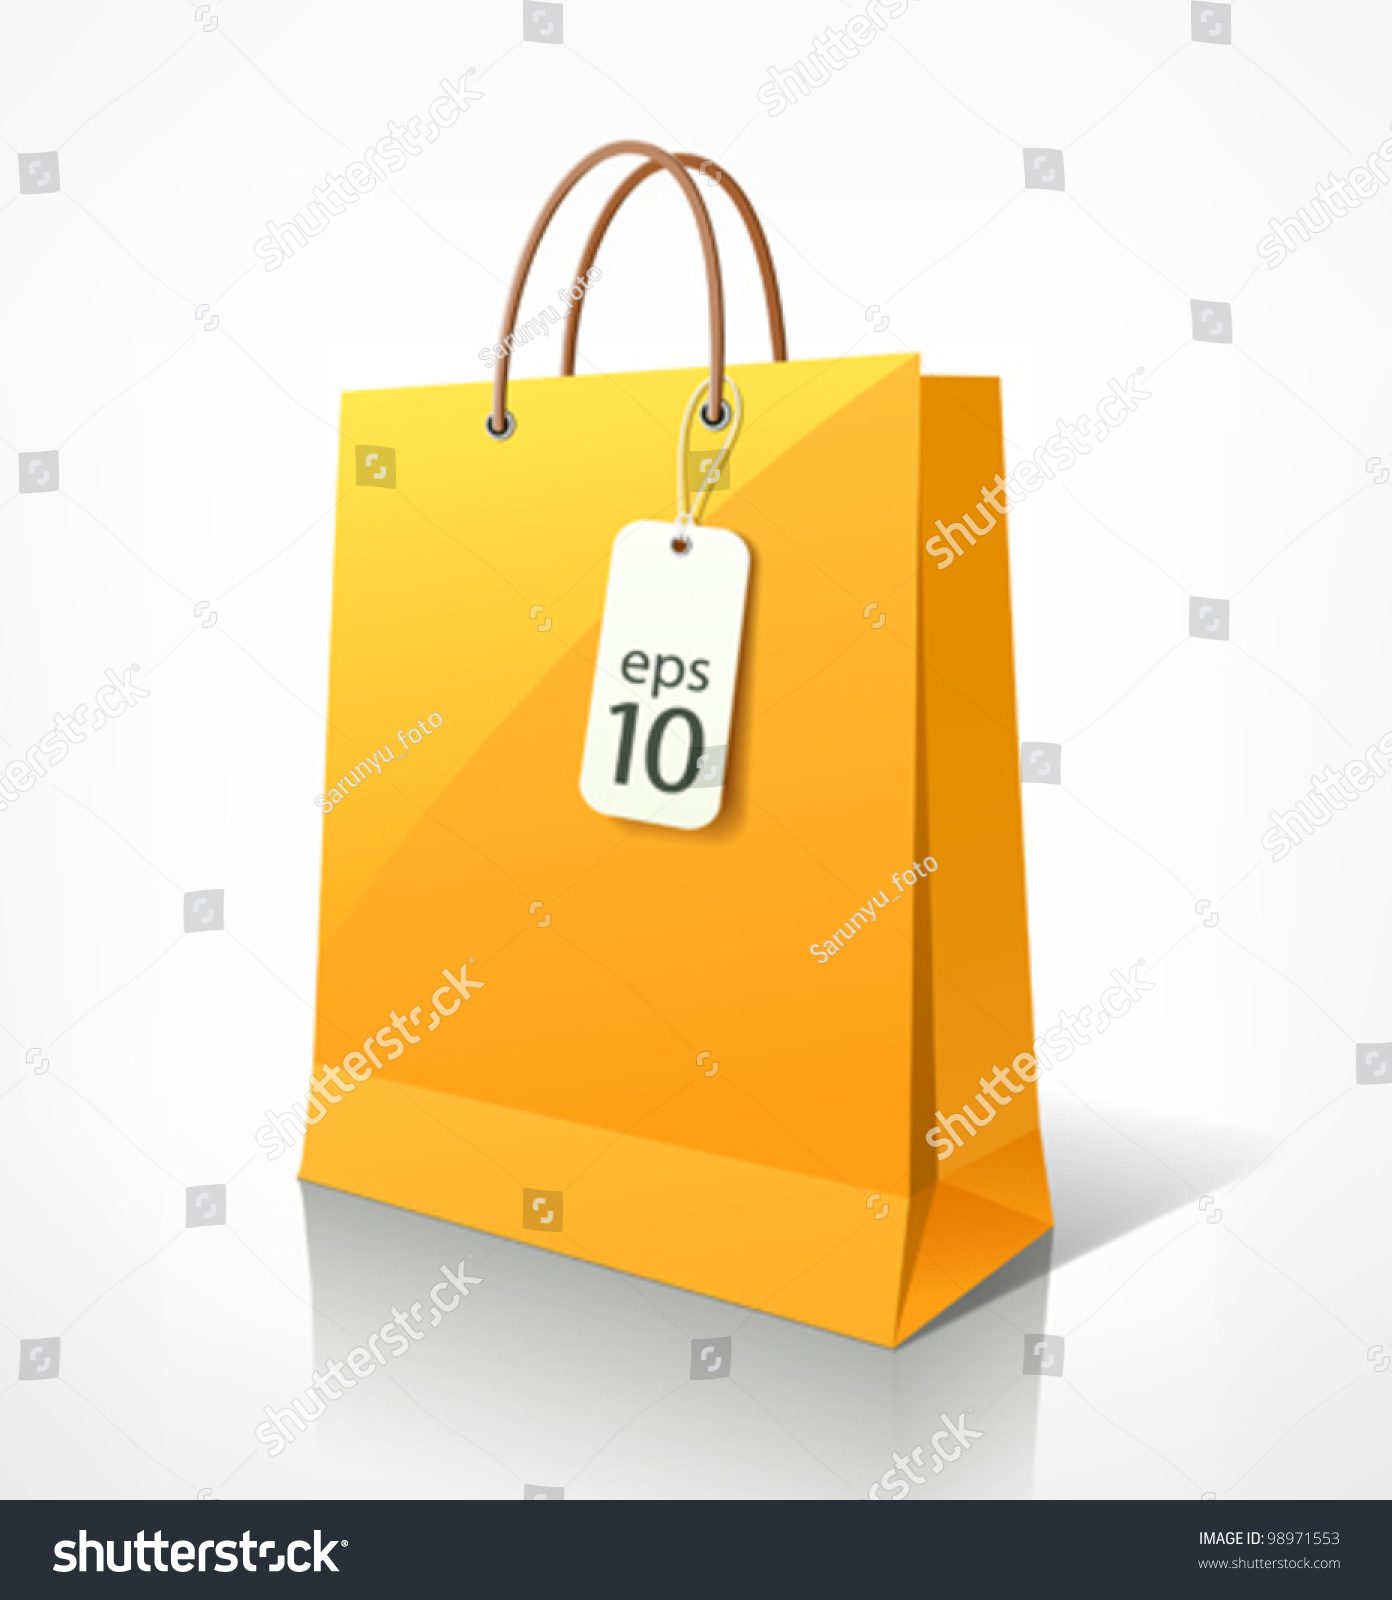 Paper bag yellow - Shopping Paper Bag Yellow Empty Vector Illustration 98971553 Shutterstock